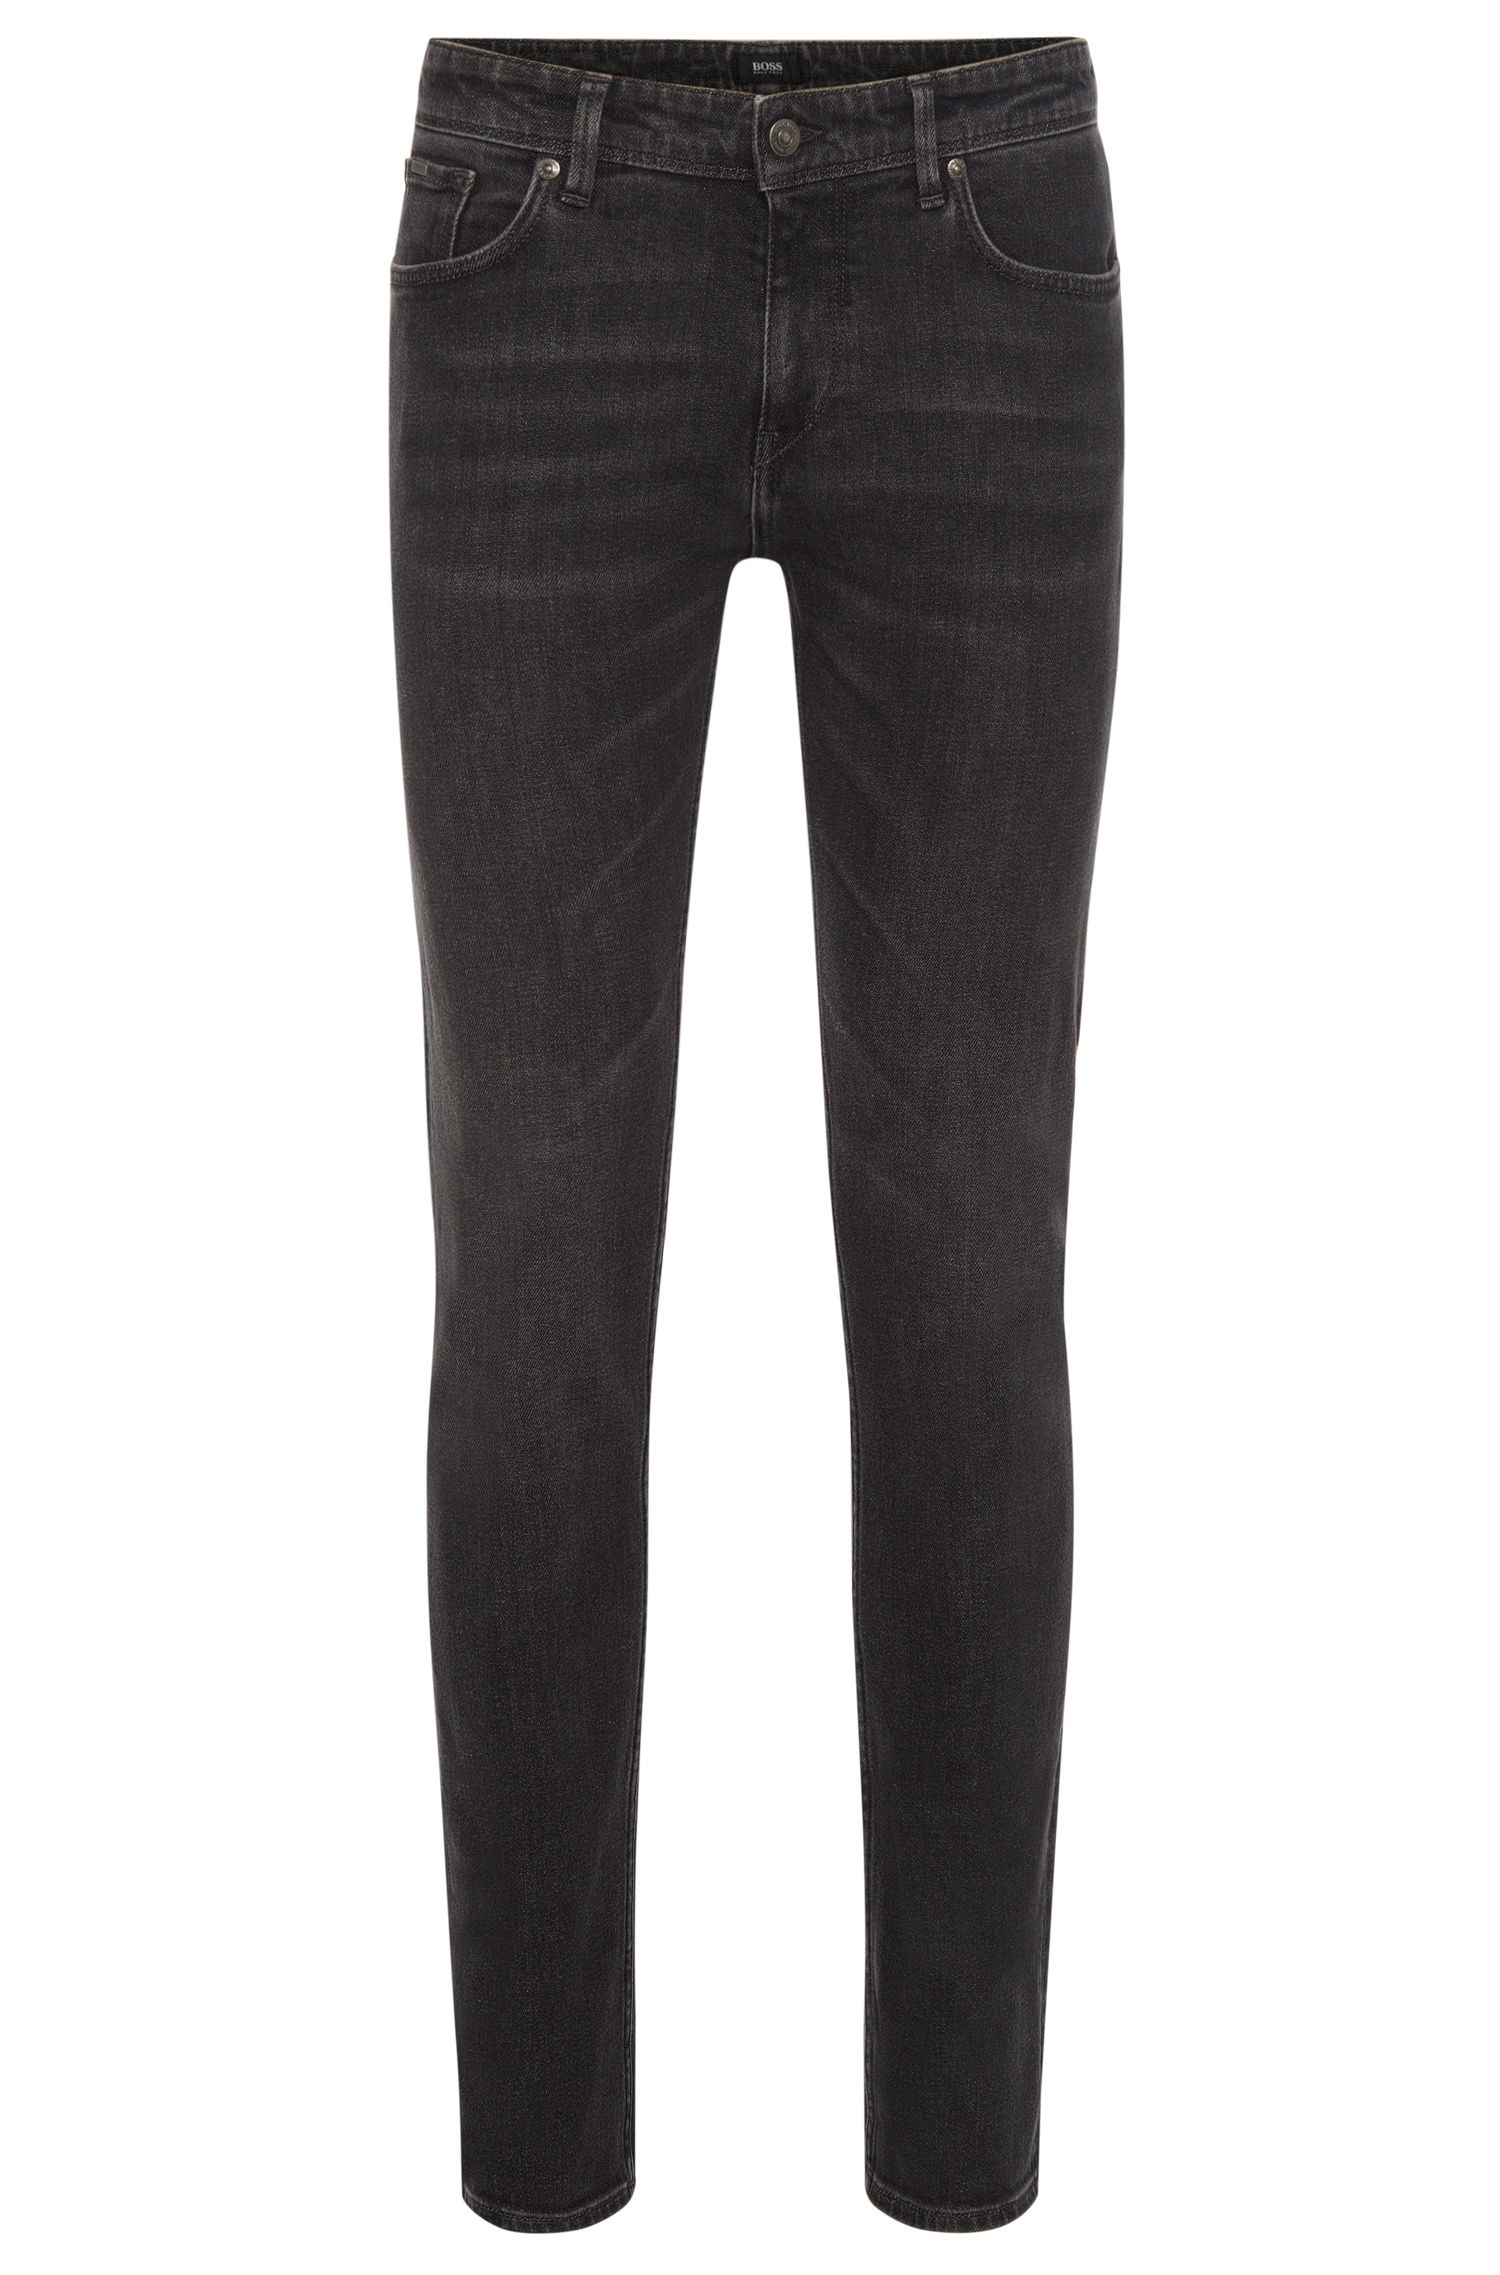 11.25 oz Stretch Cotton Jeans, Slim Fit | Charleston